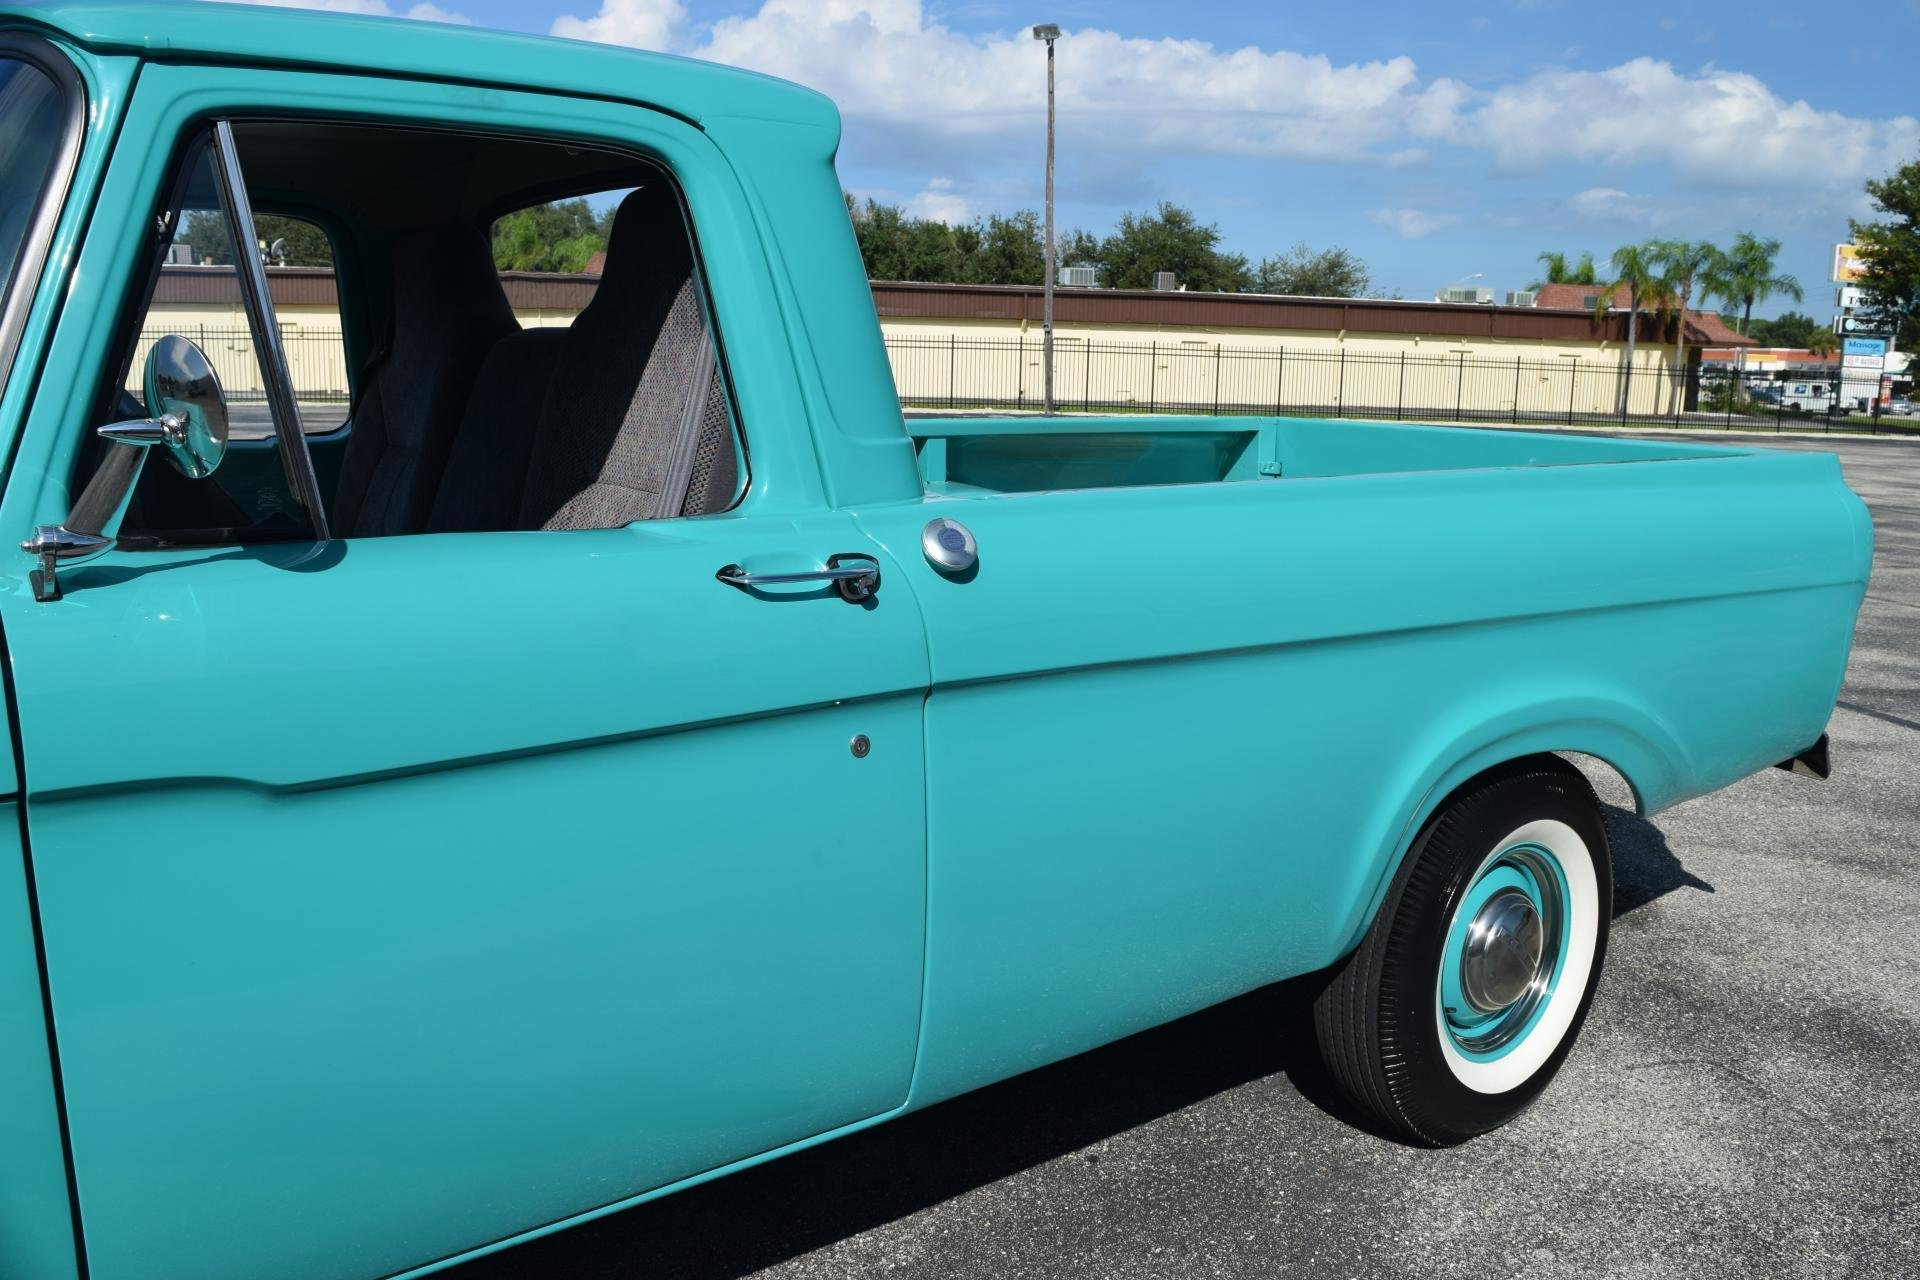 1961 Ford F100 Ideal Classic Cars Llc Pick Up 75066d54423a Low Res